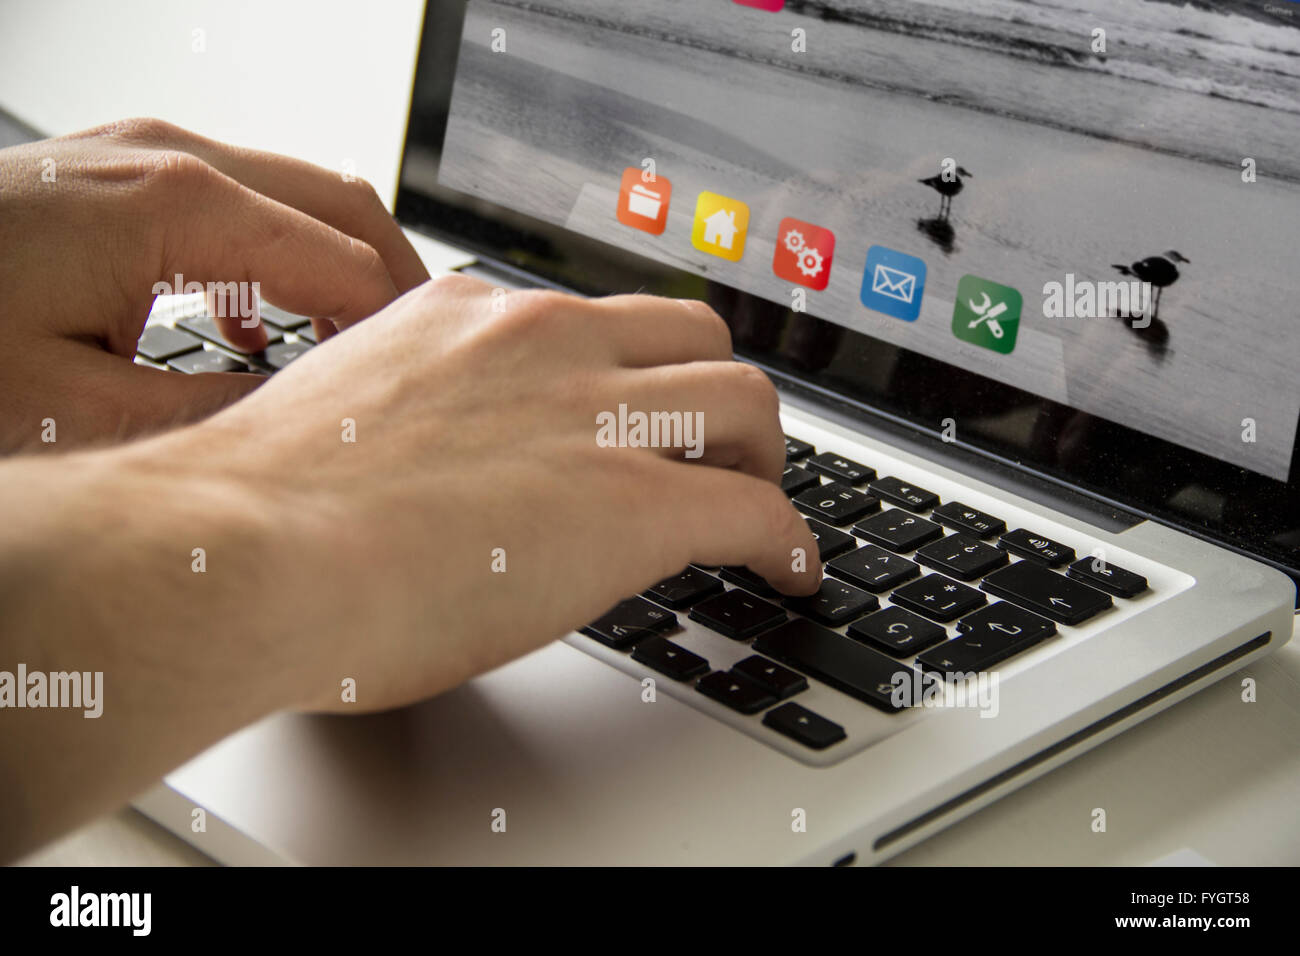 work concept: man using a laptop with colorful interface - Stock Image